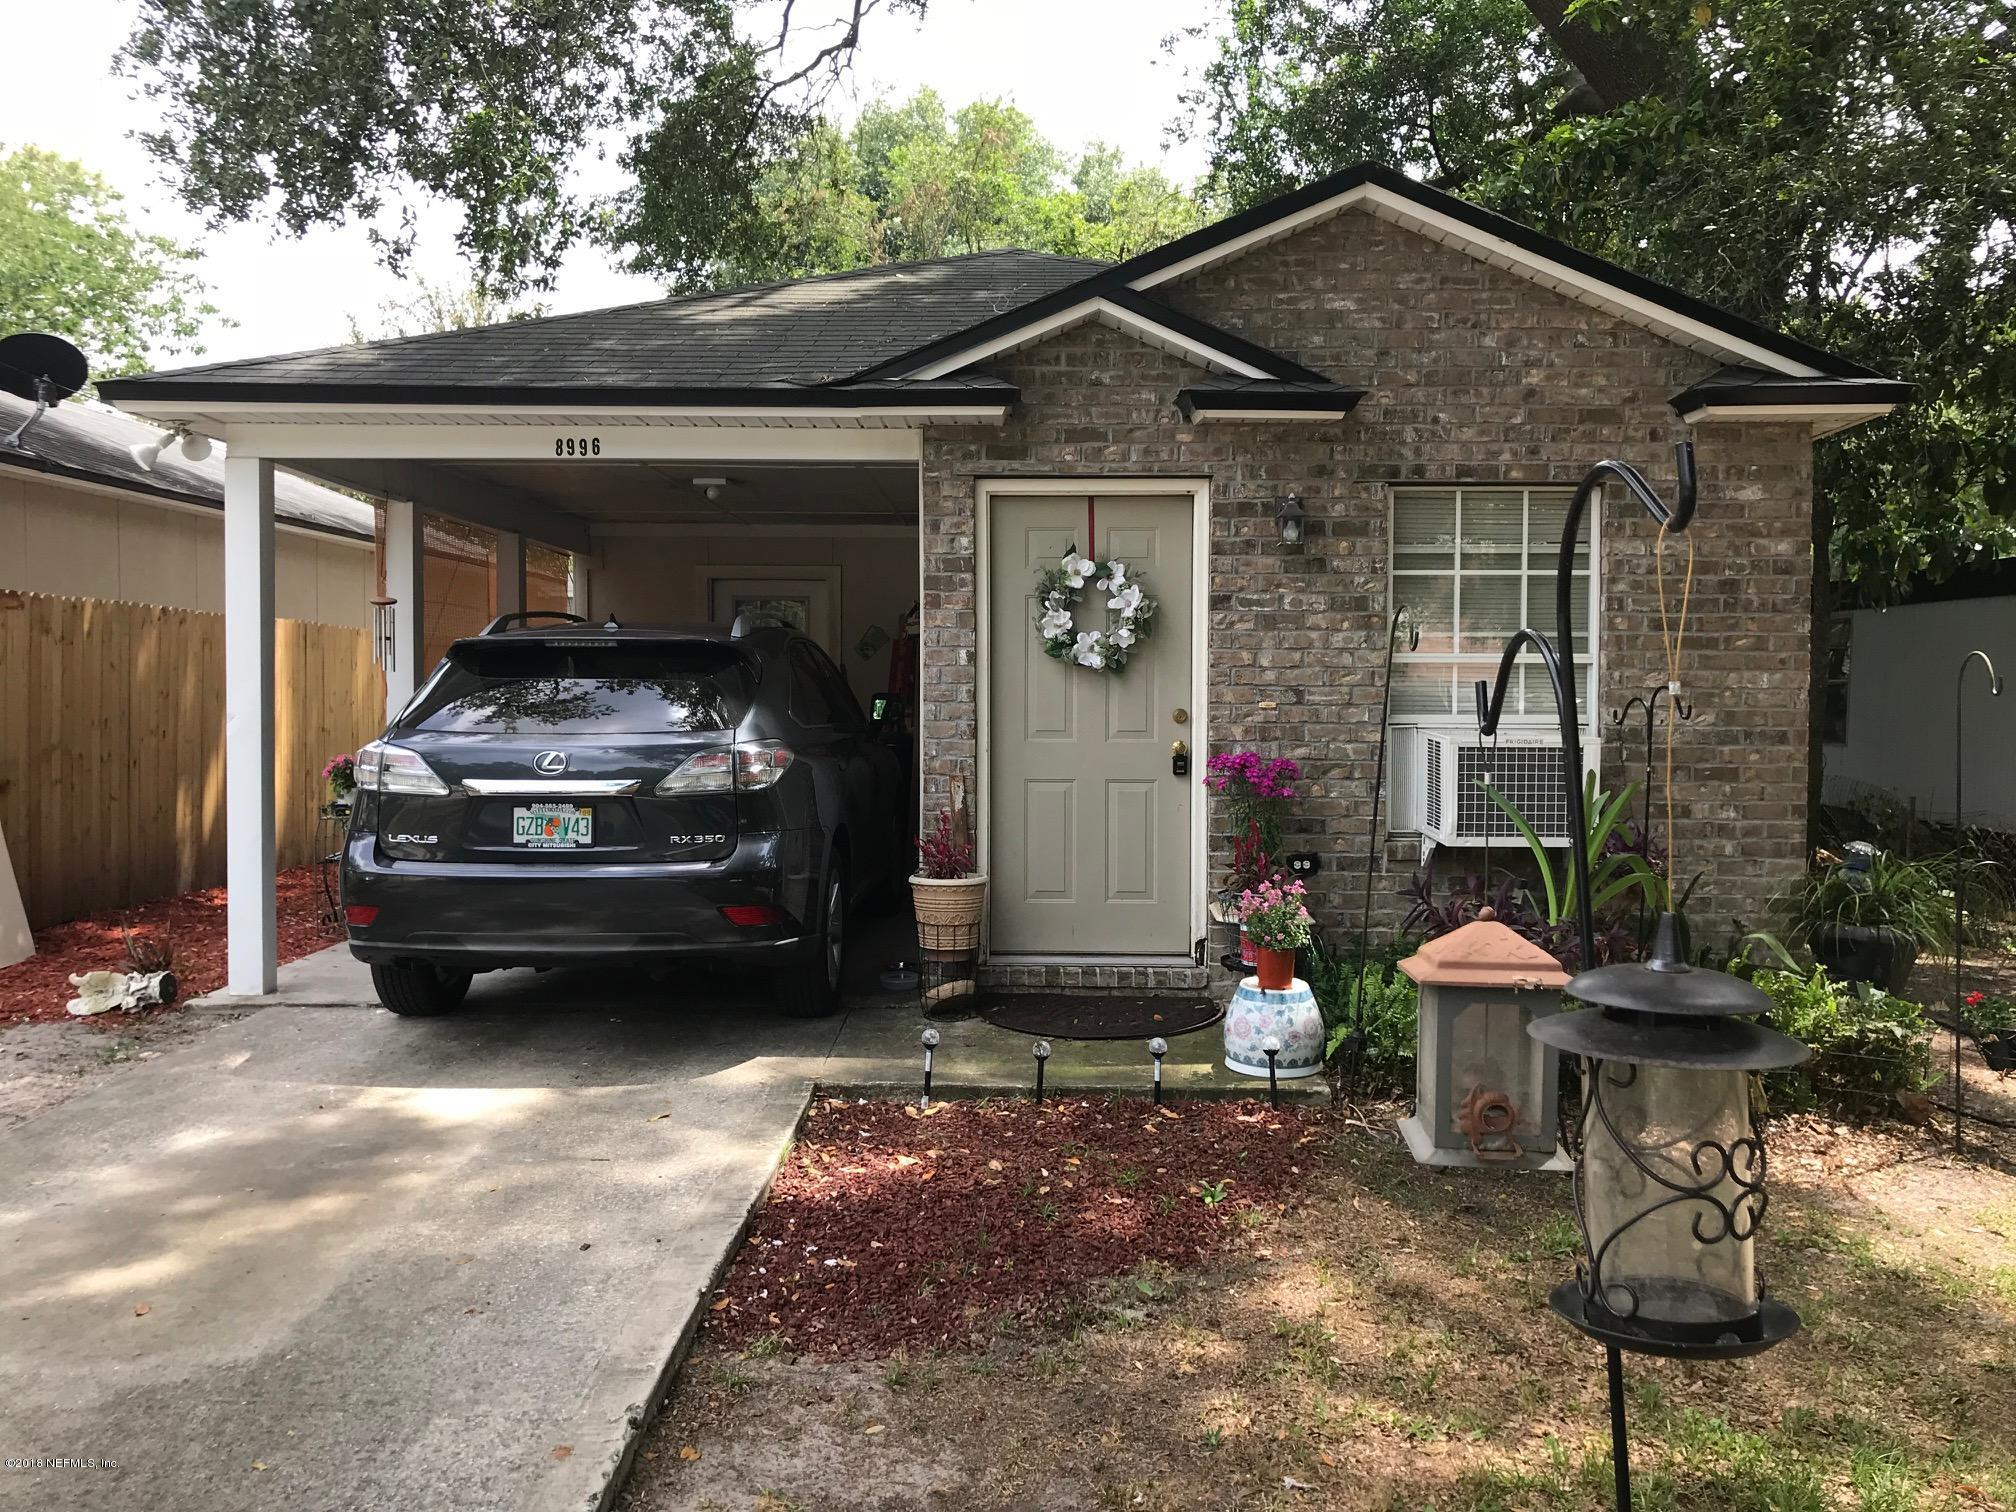 8996 HARE, JACKSONVILLE, FLORIDA 32211, 3 Bedrooms Bedrooms, ,1 BathroomBathrooms,Residential - single family,For sale,HARE,935621